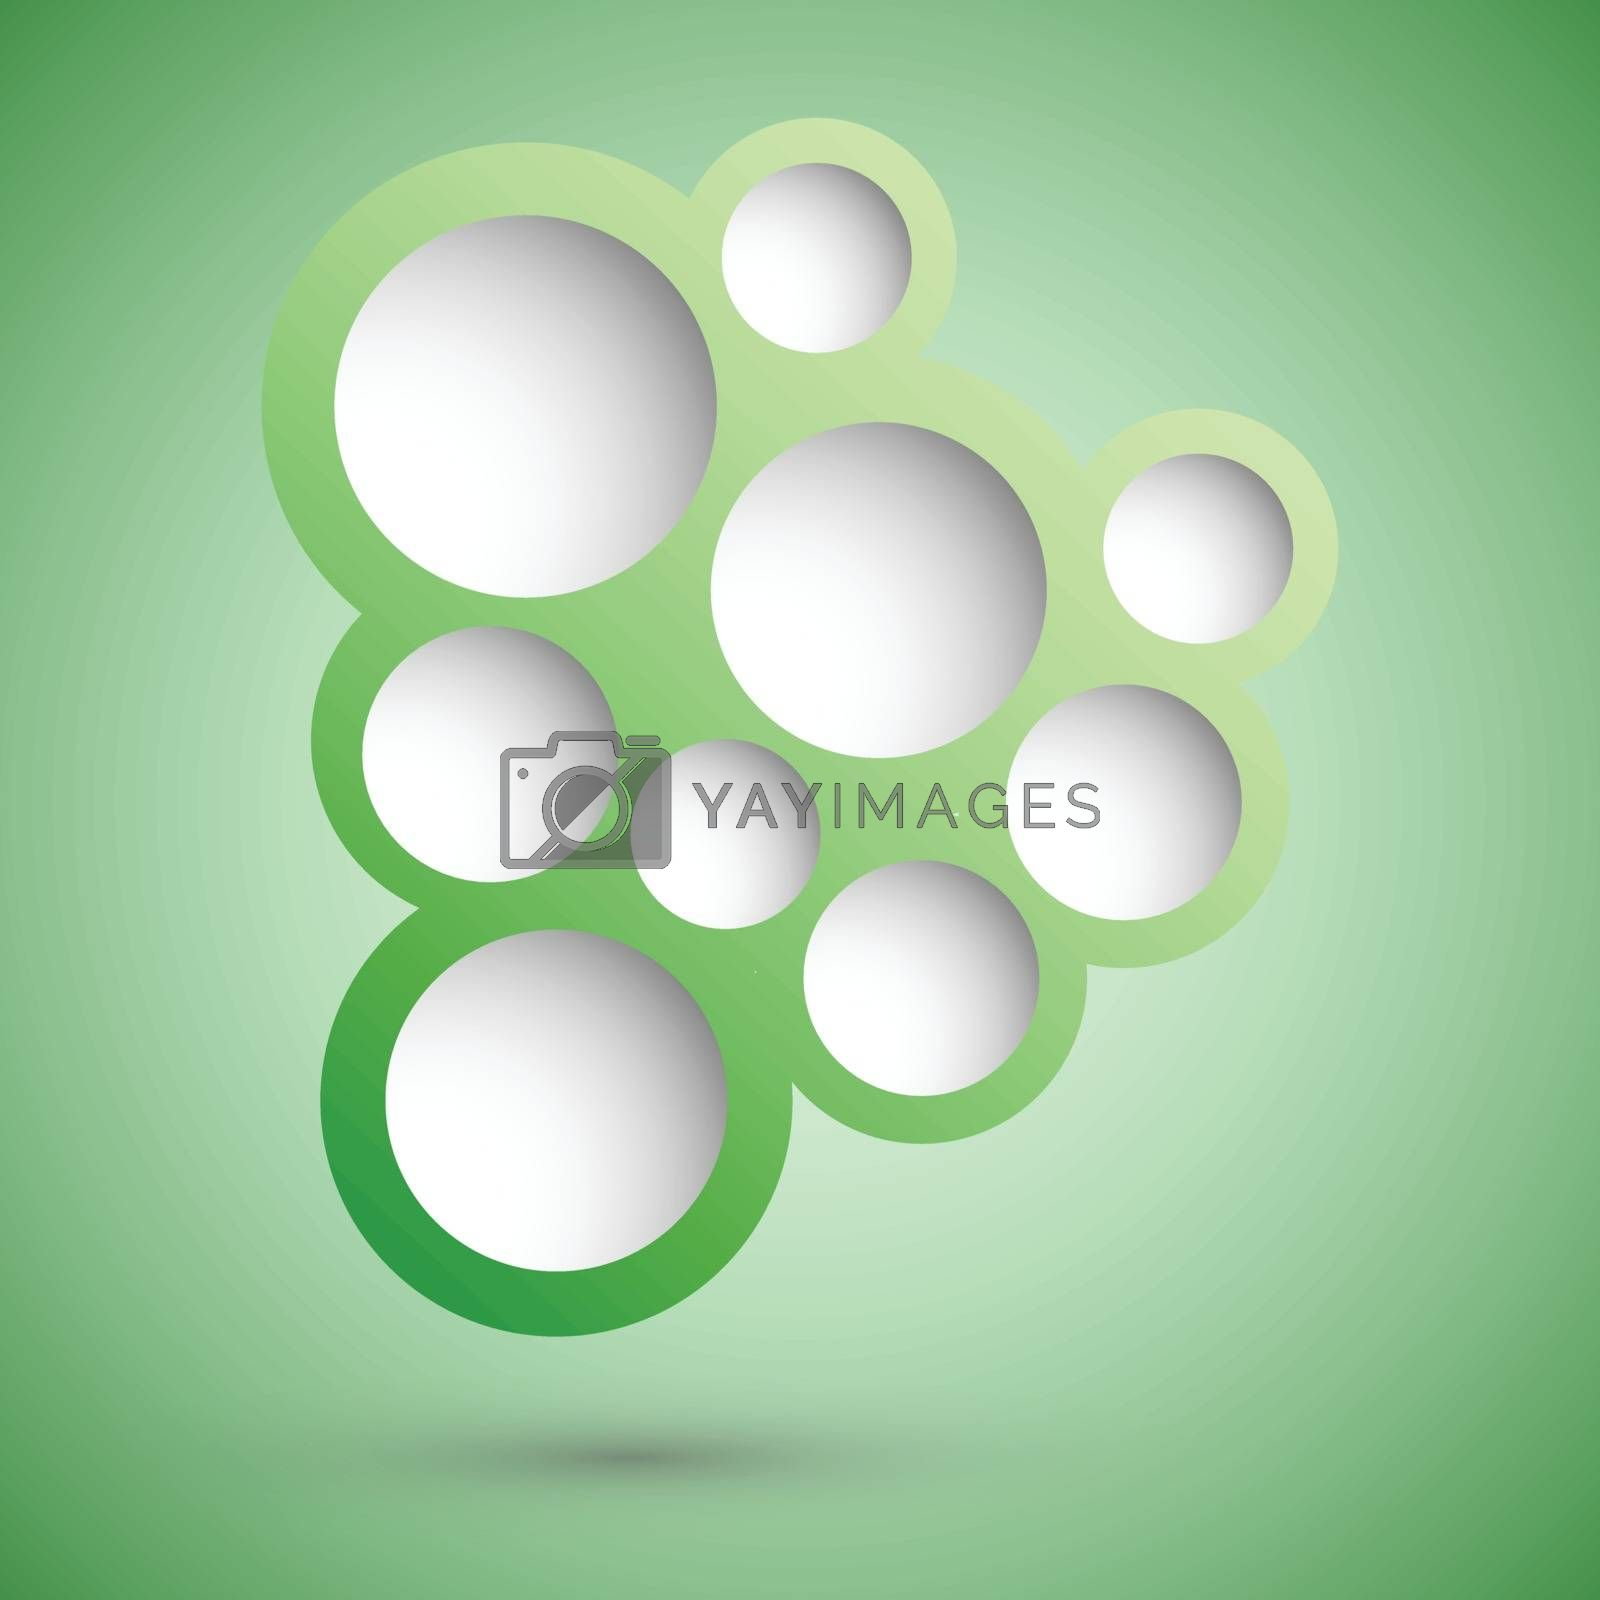 Abstract green speech bubble background, stock vector